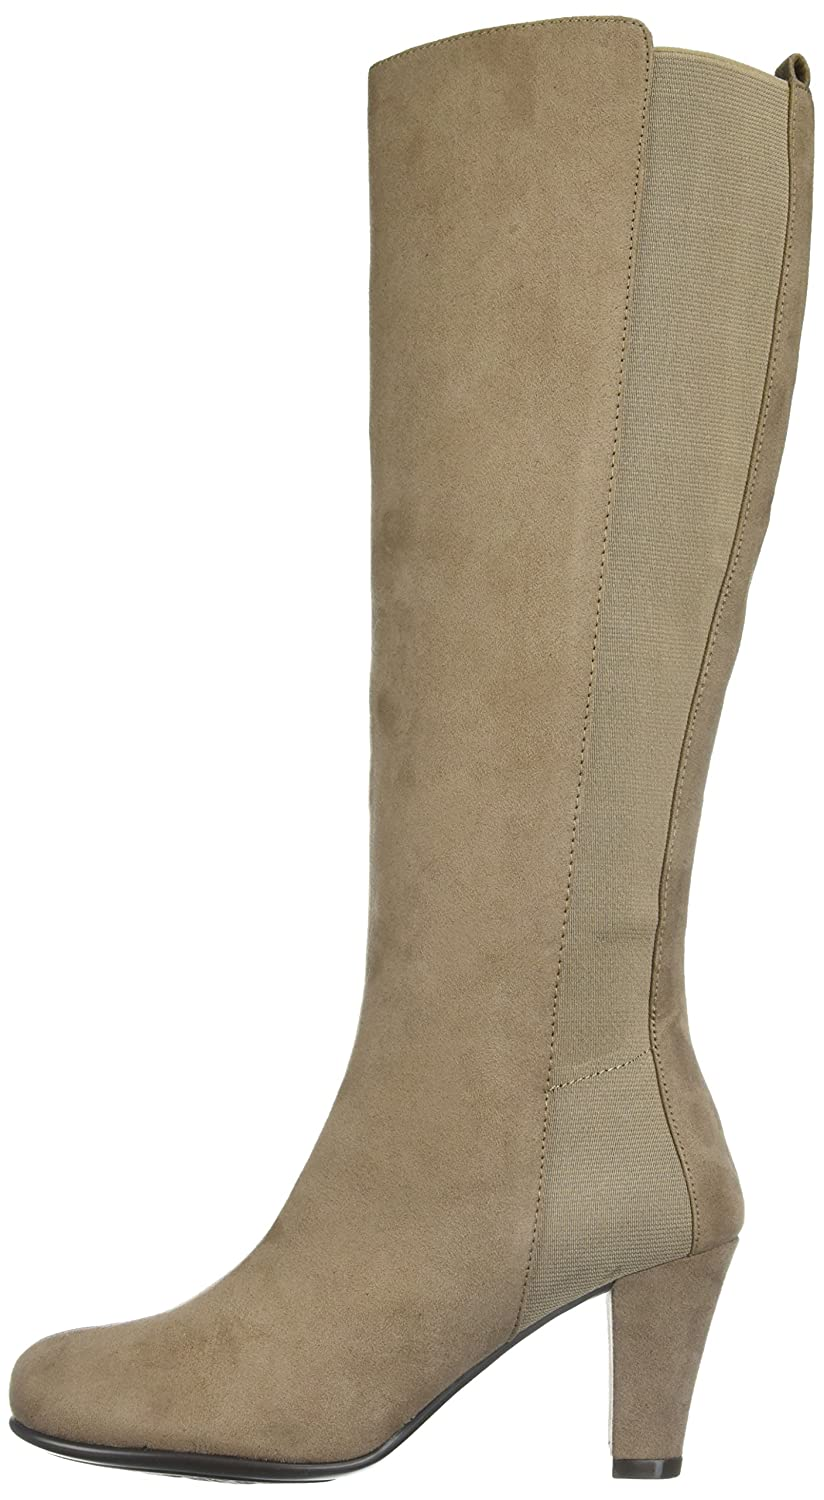 Aerosoles Women's Quick Role Knee High Boot B074GGZ1Z4 9.5 W US|Taupe Fabric